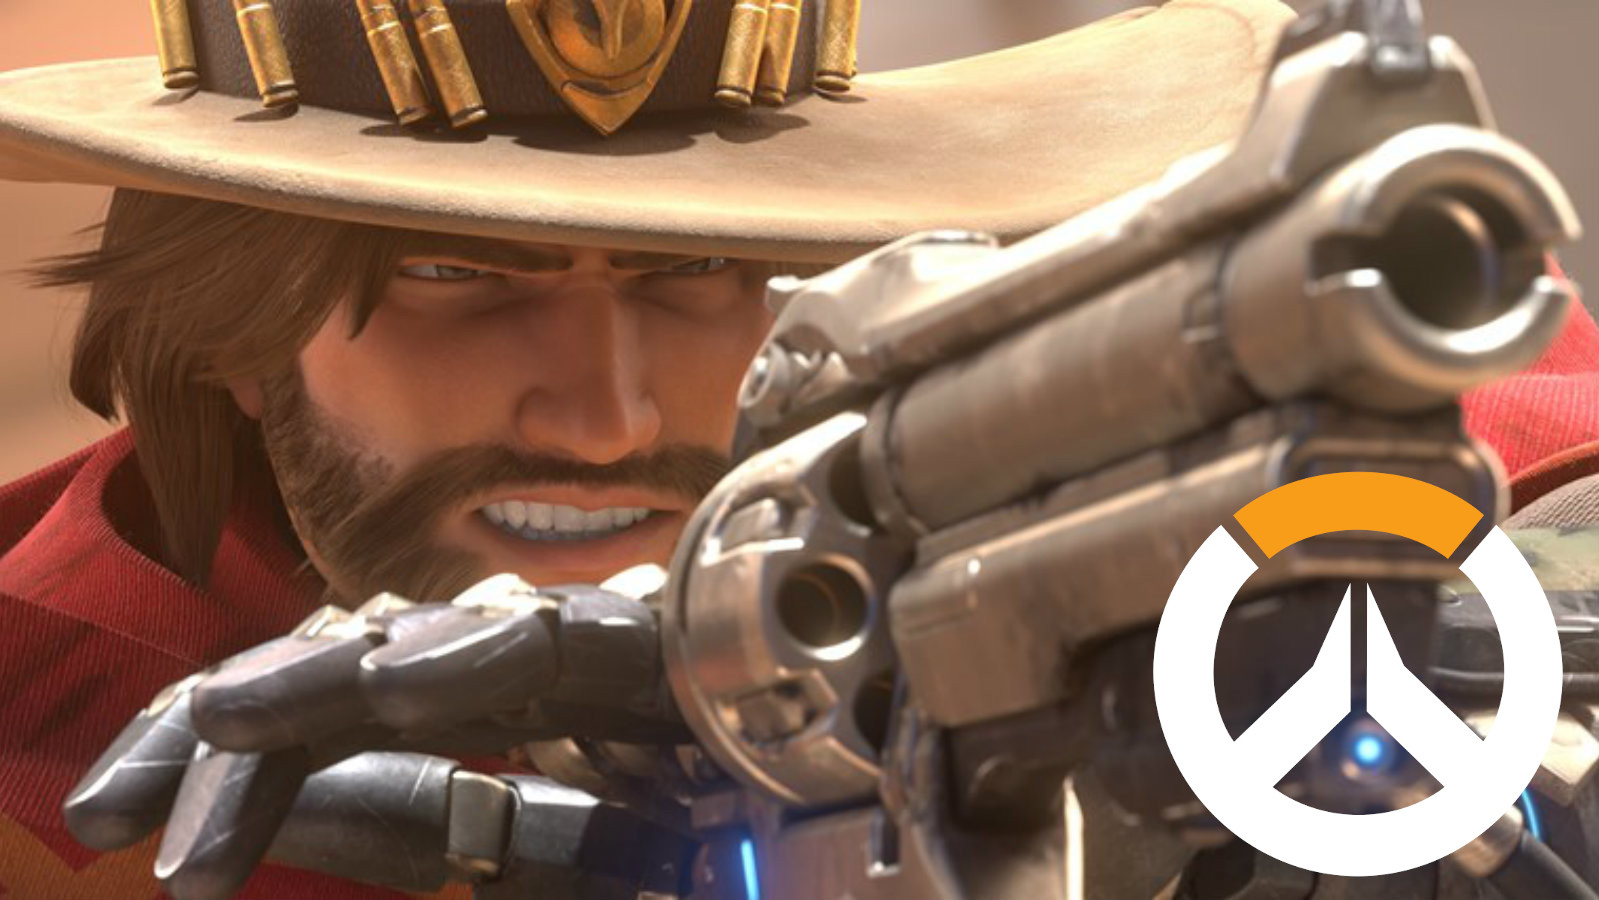 McCree fires his six-shooter